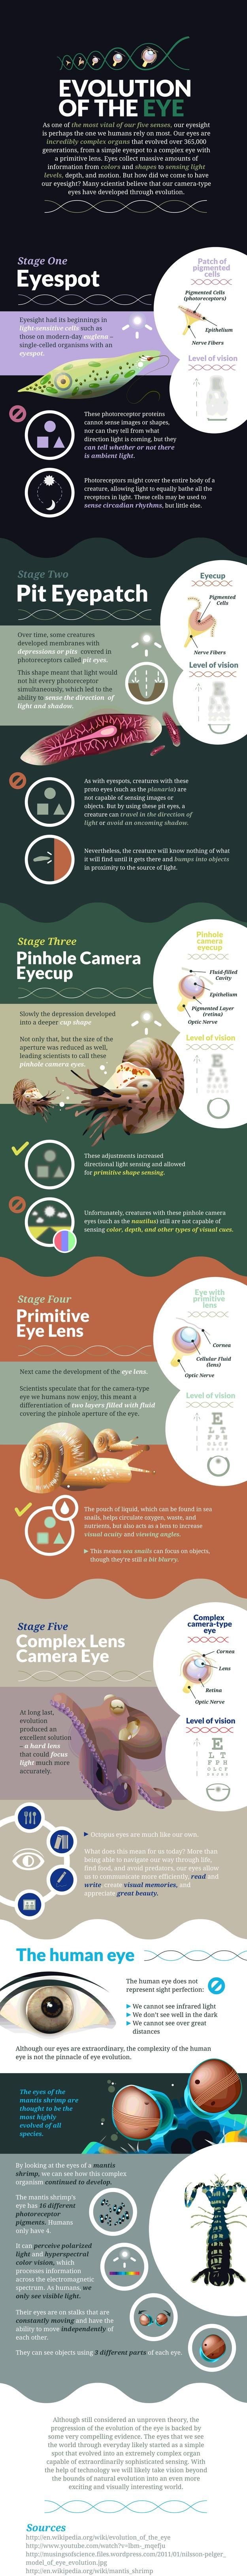 Who knew...the mantis shrimp visual system is more evolved than the human eye!  info-eye-evolution-infographic